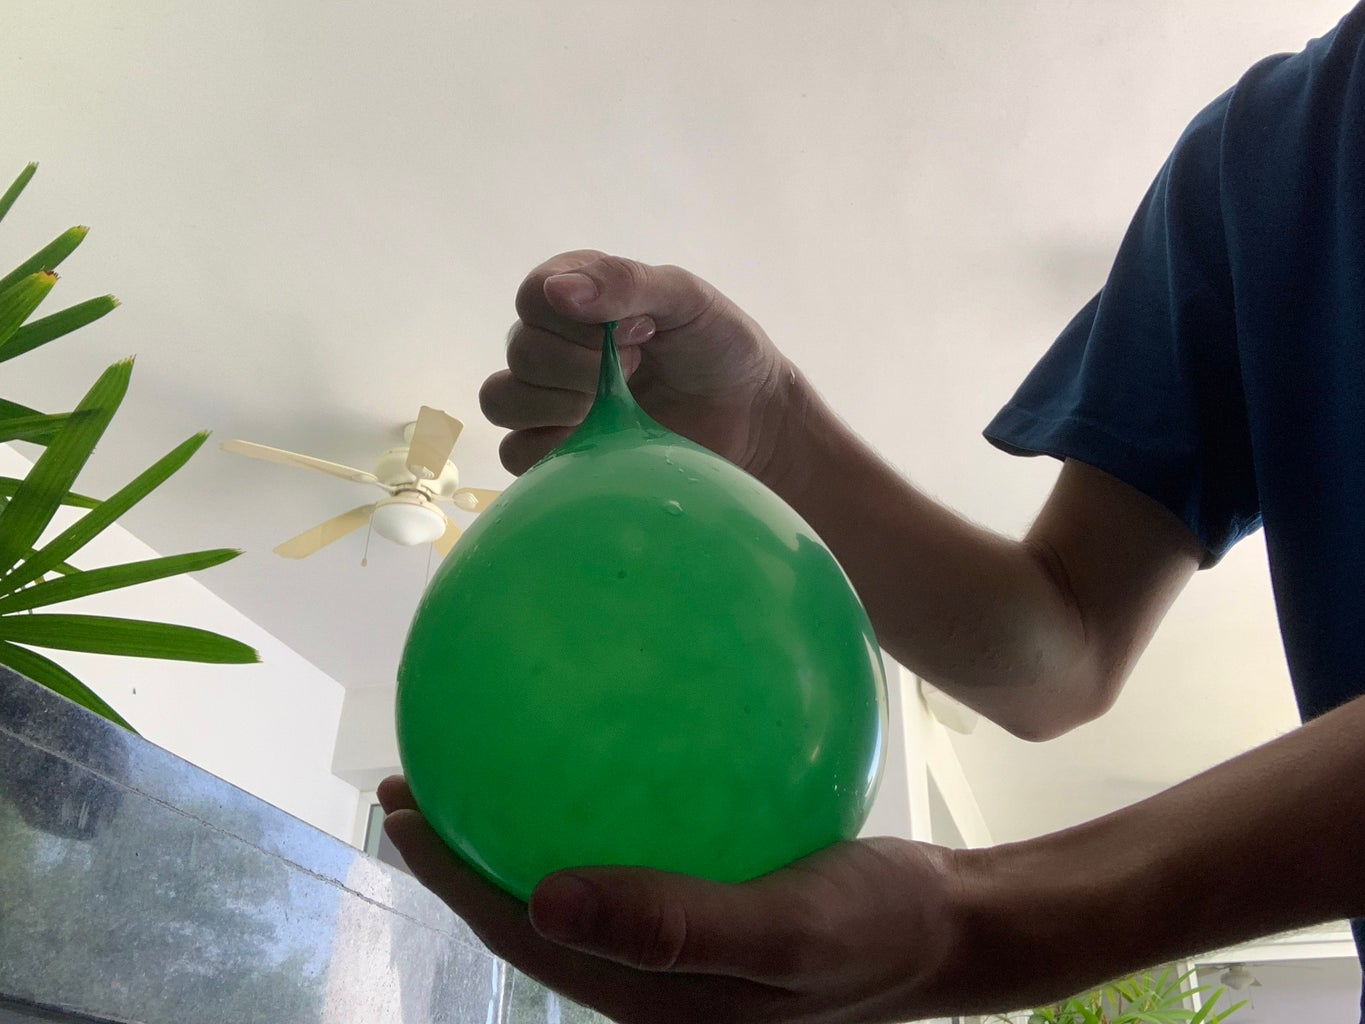 Blow Up a Balloon and Place It in a Cup